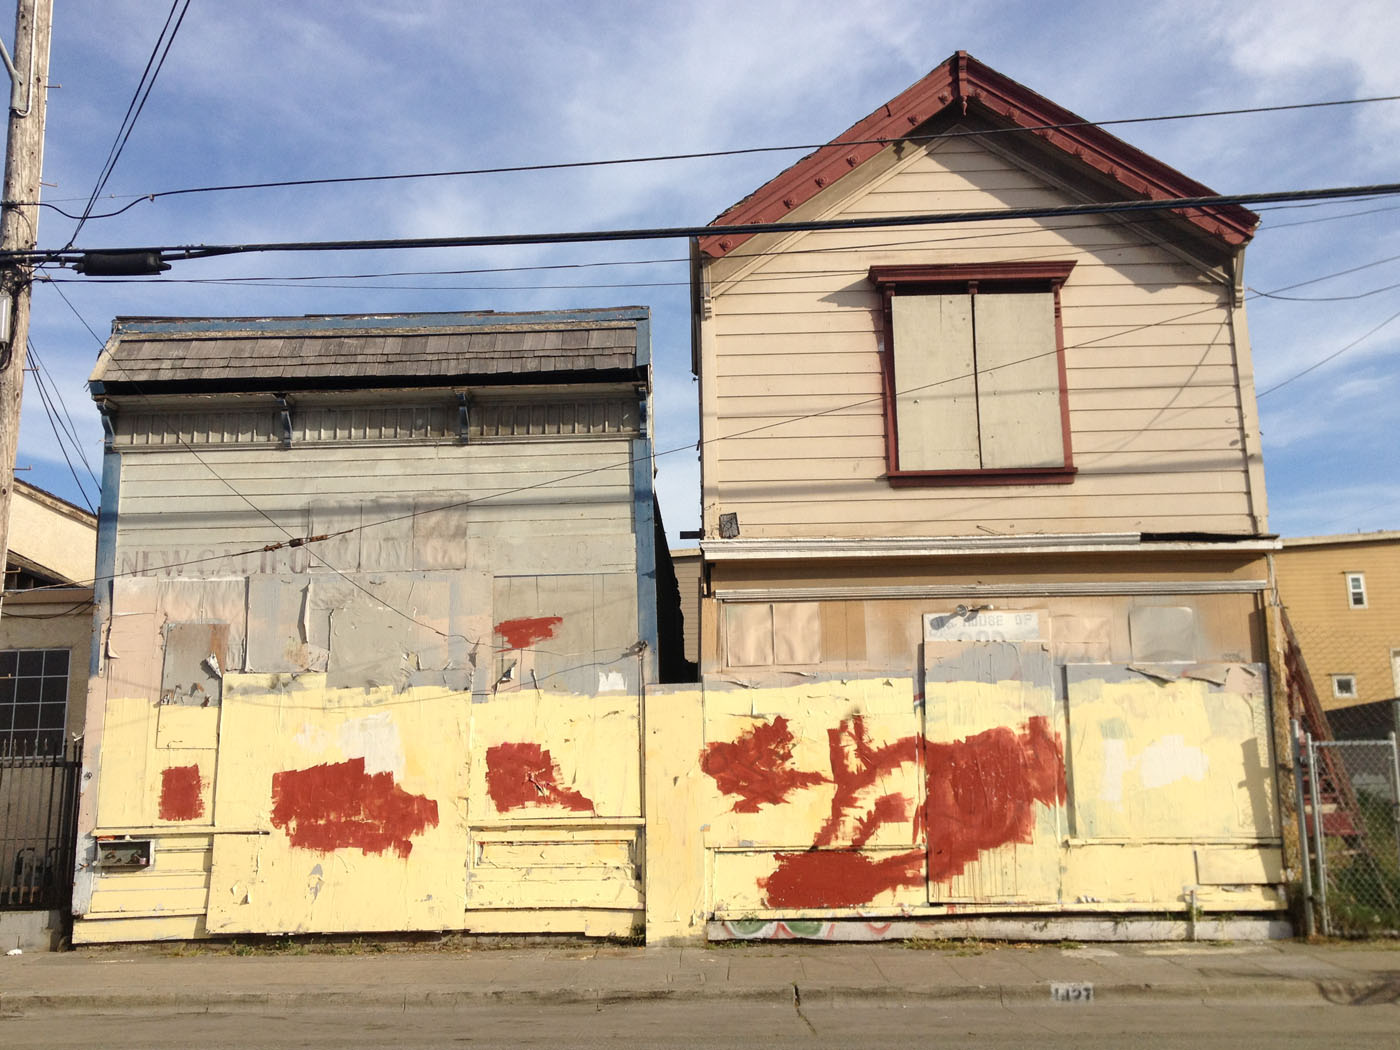 The New California Barber Shop and the House Of God Spiritual Temple, Dogtown, Oakland, mid 2012.